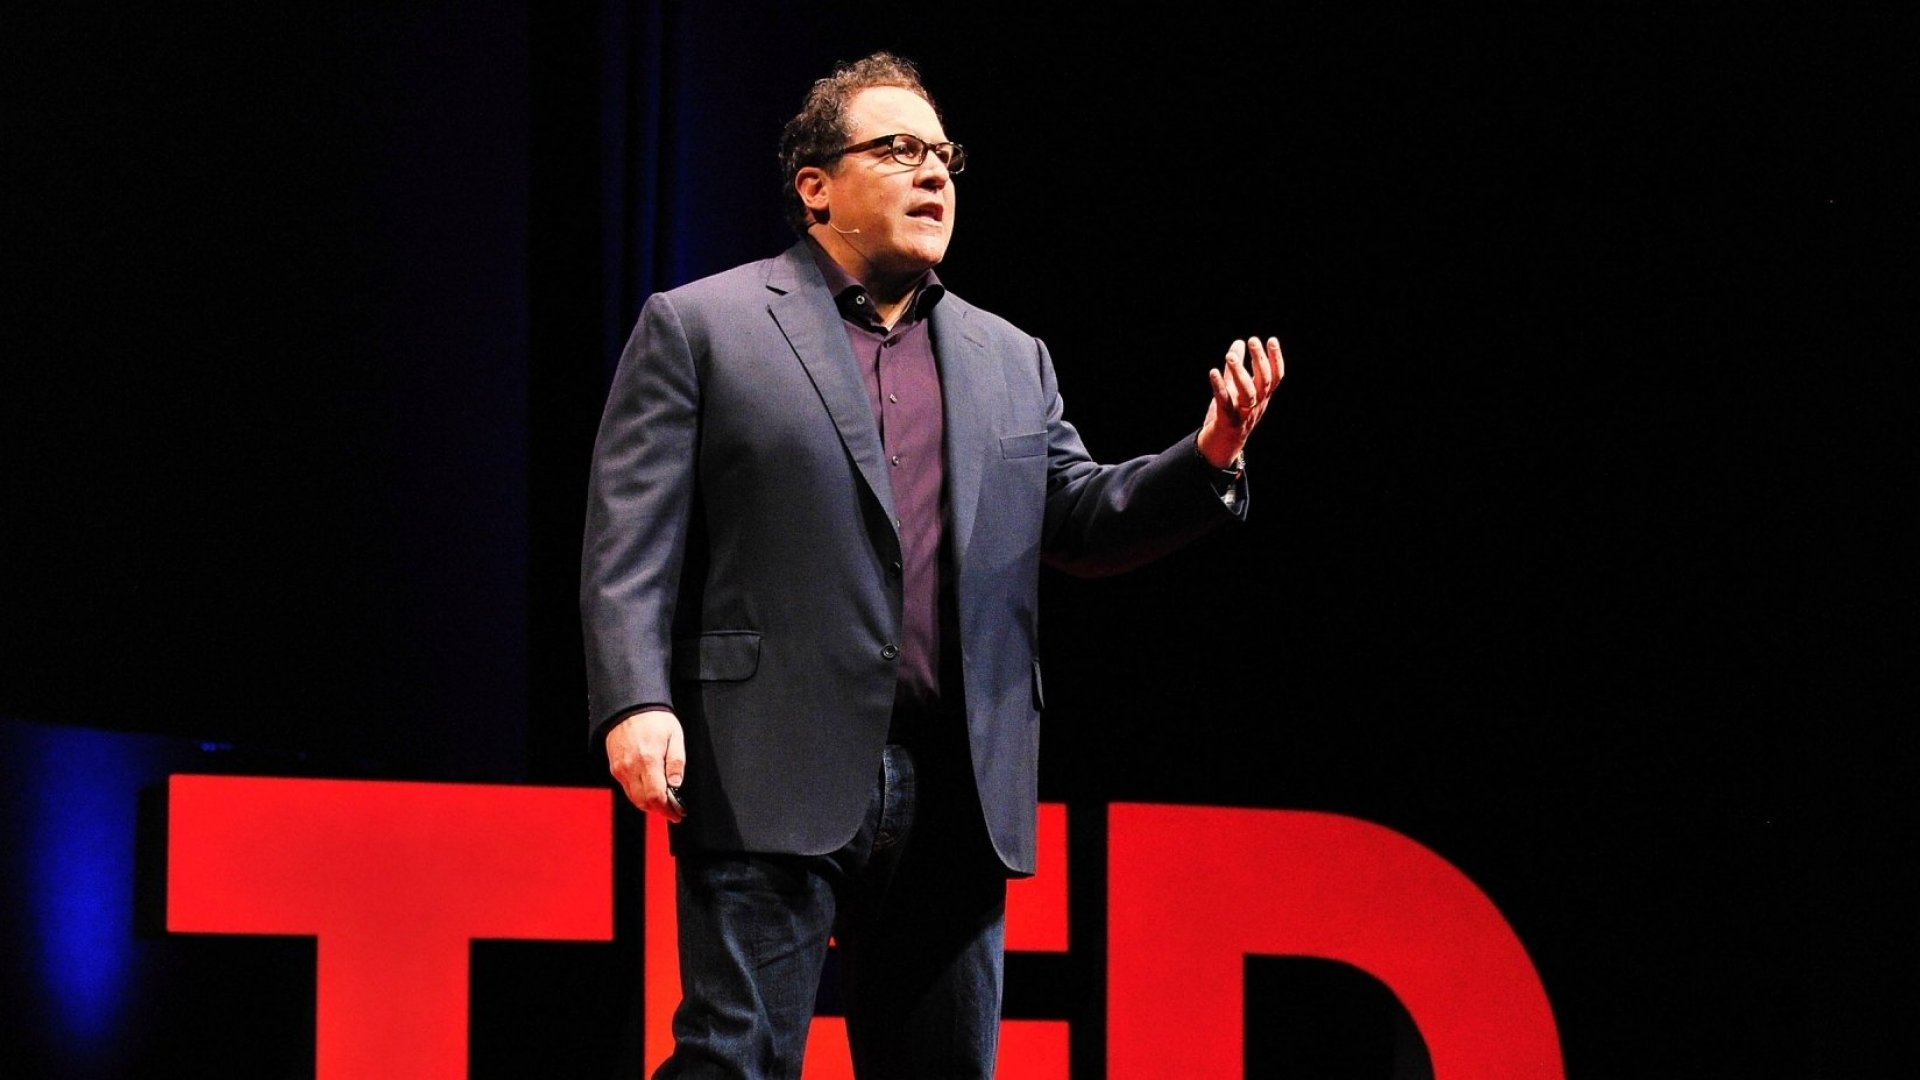 5 Easy Tips to Help Get You On the TED Stage as a Featured Speaker